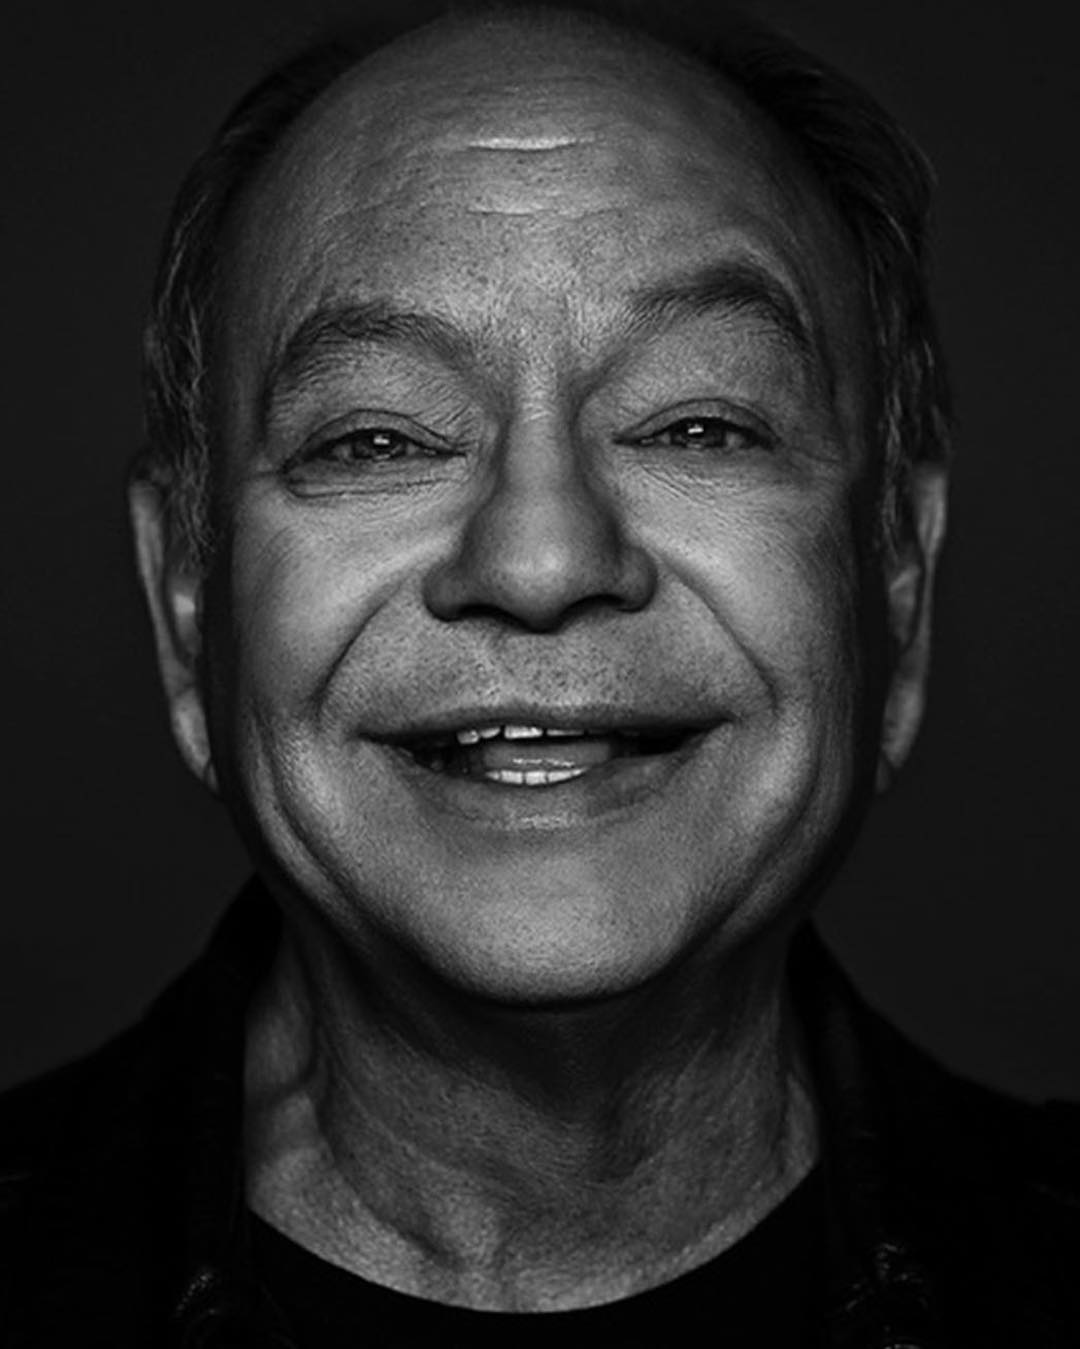 Cheech Marin Instagram username